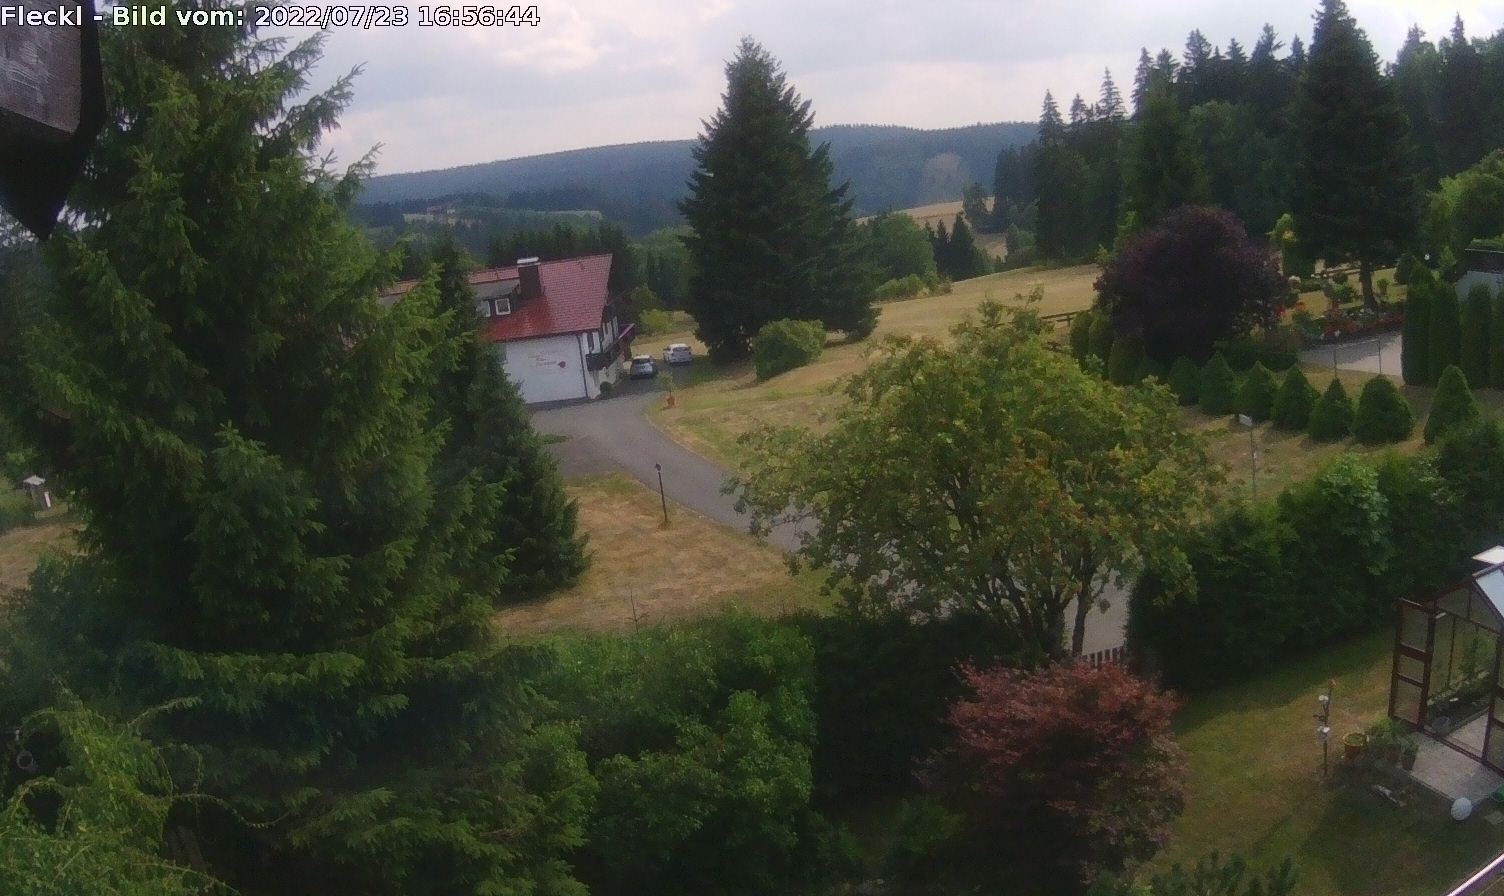 Webcam Fleckl Warmensteinach